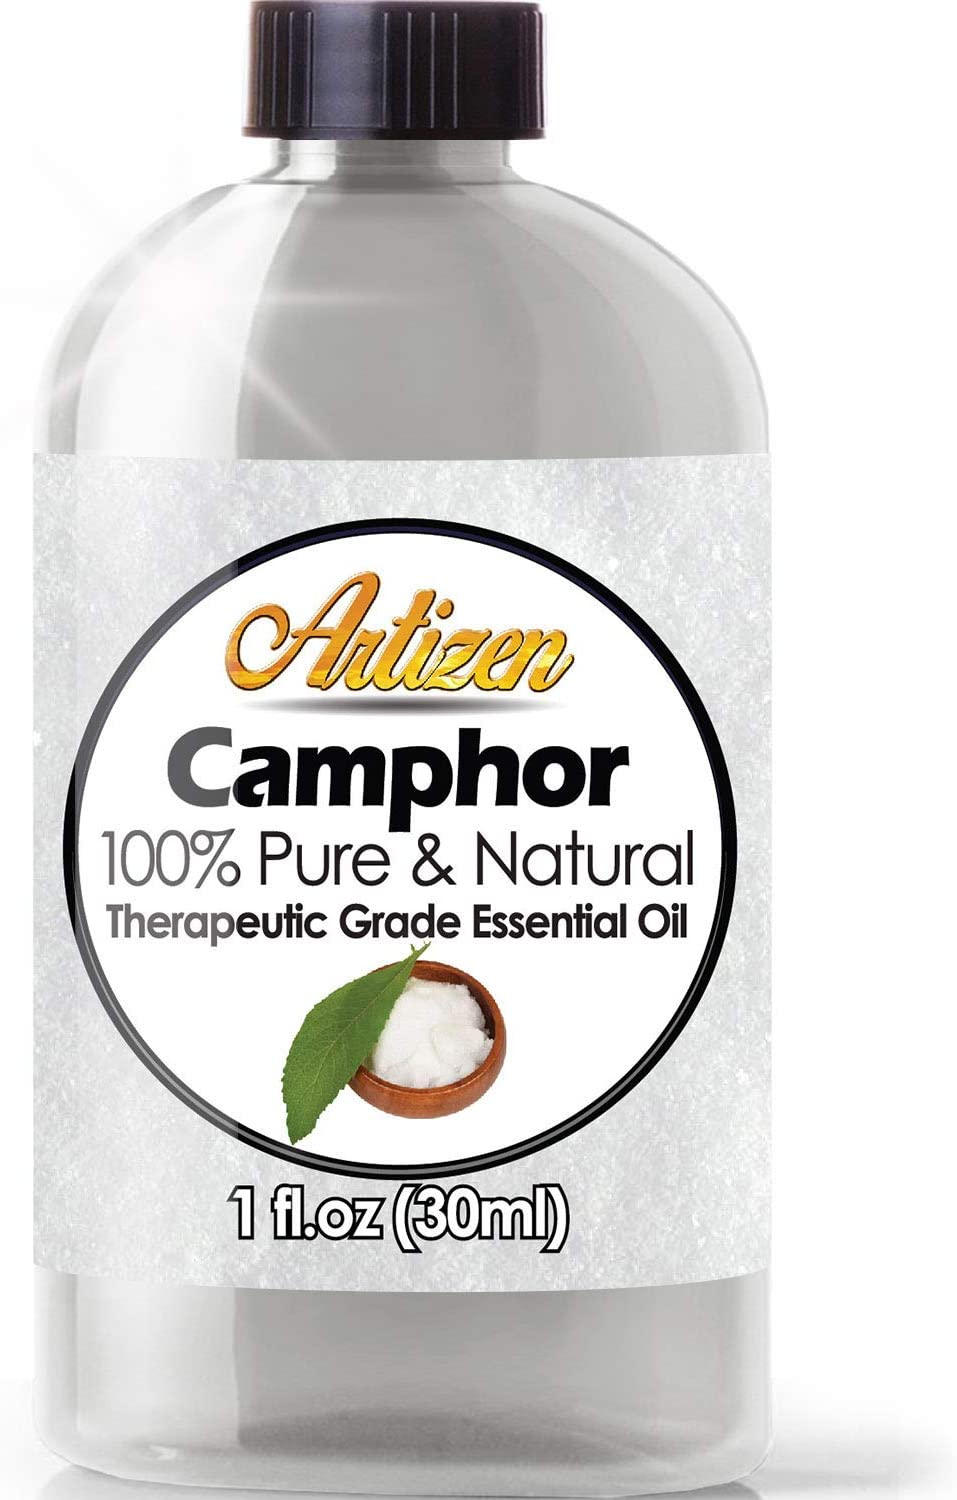 Artizen Camphor Essential Oil (100% PURE & NATURAL - UNDILUTED) Therapeutic Grade - Huge 1oz Bottle - Perfect for Aromatherapy, Relaxation, Skin Therapy & More!